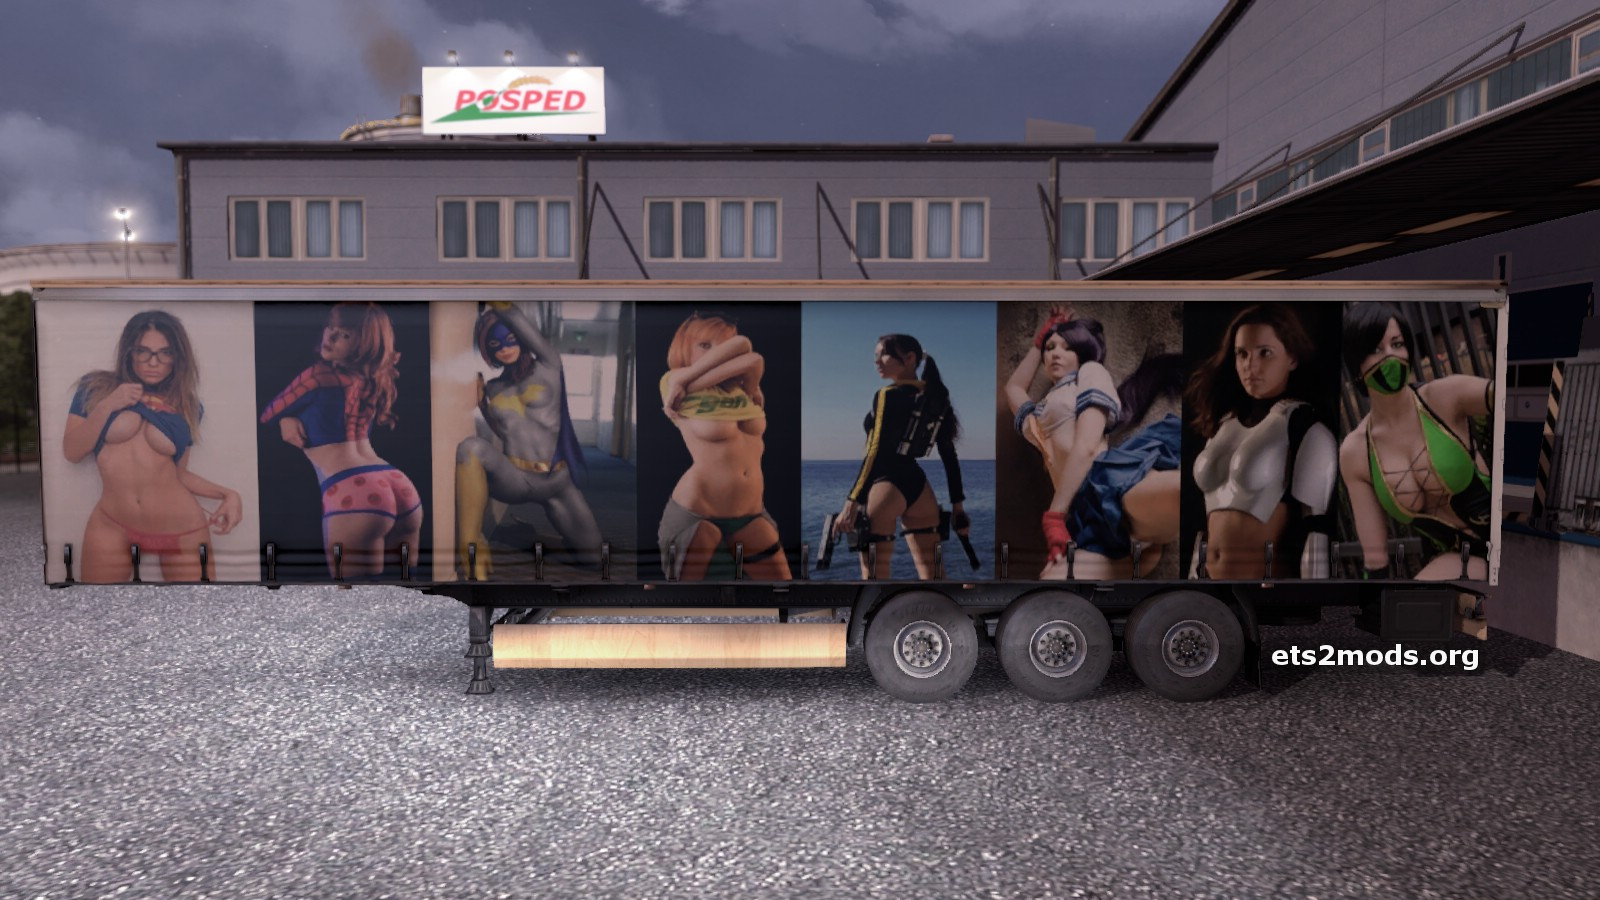 The Cosplay Trailer ets2